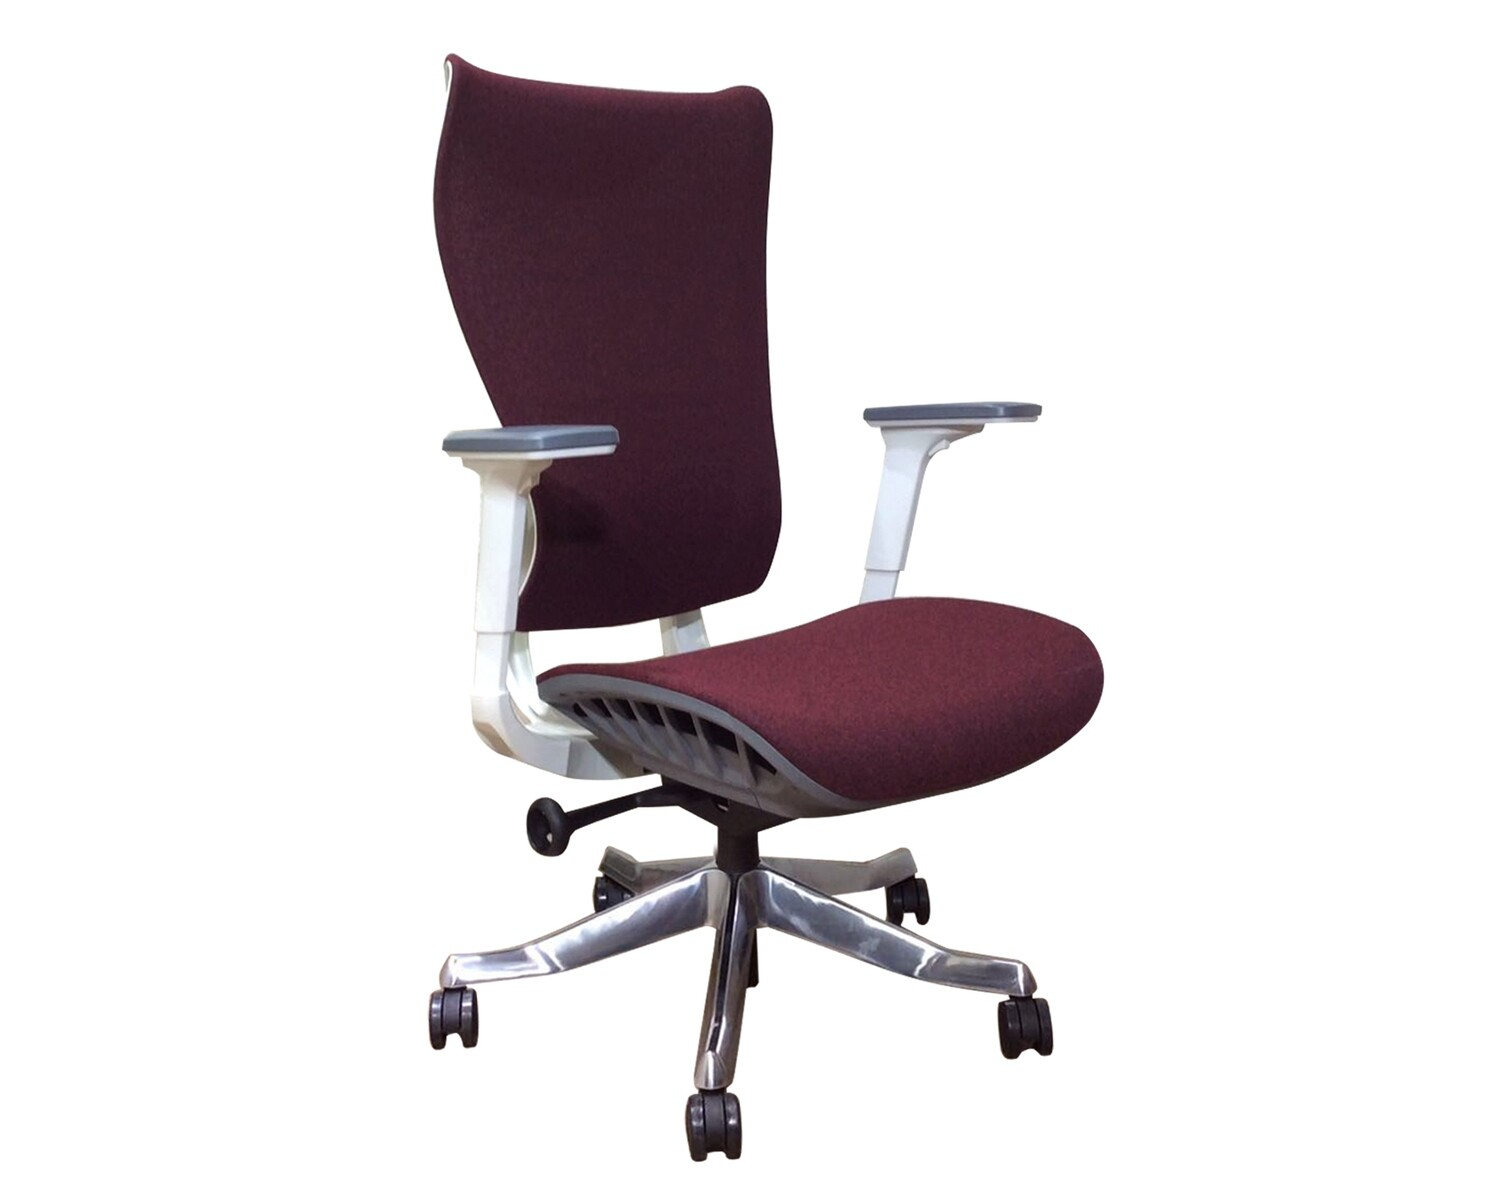 Ofix Premium 24 High Back ALL Mesh Chair (w/ Seat Slide) (Red, Grey)